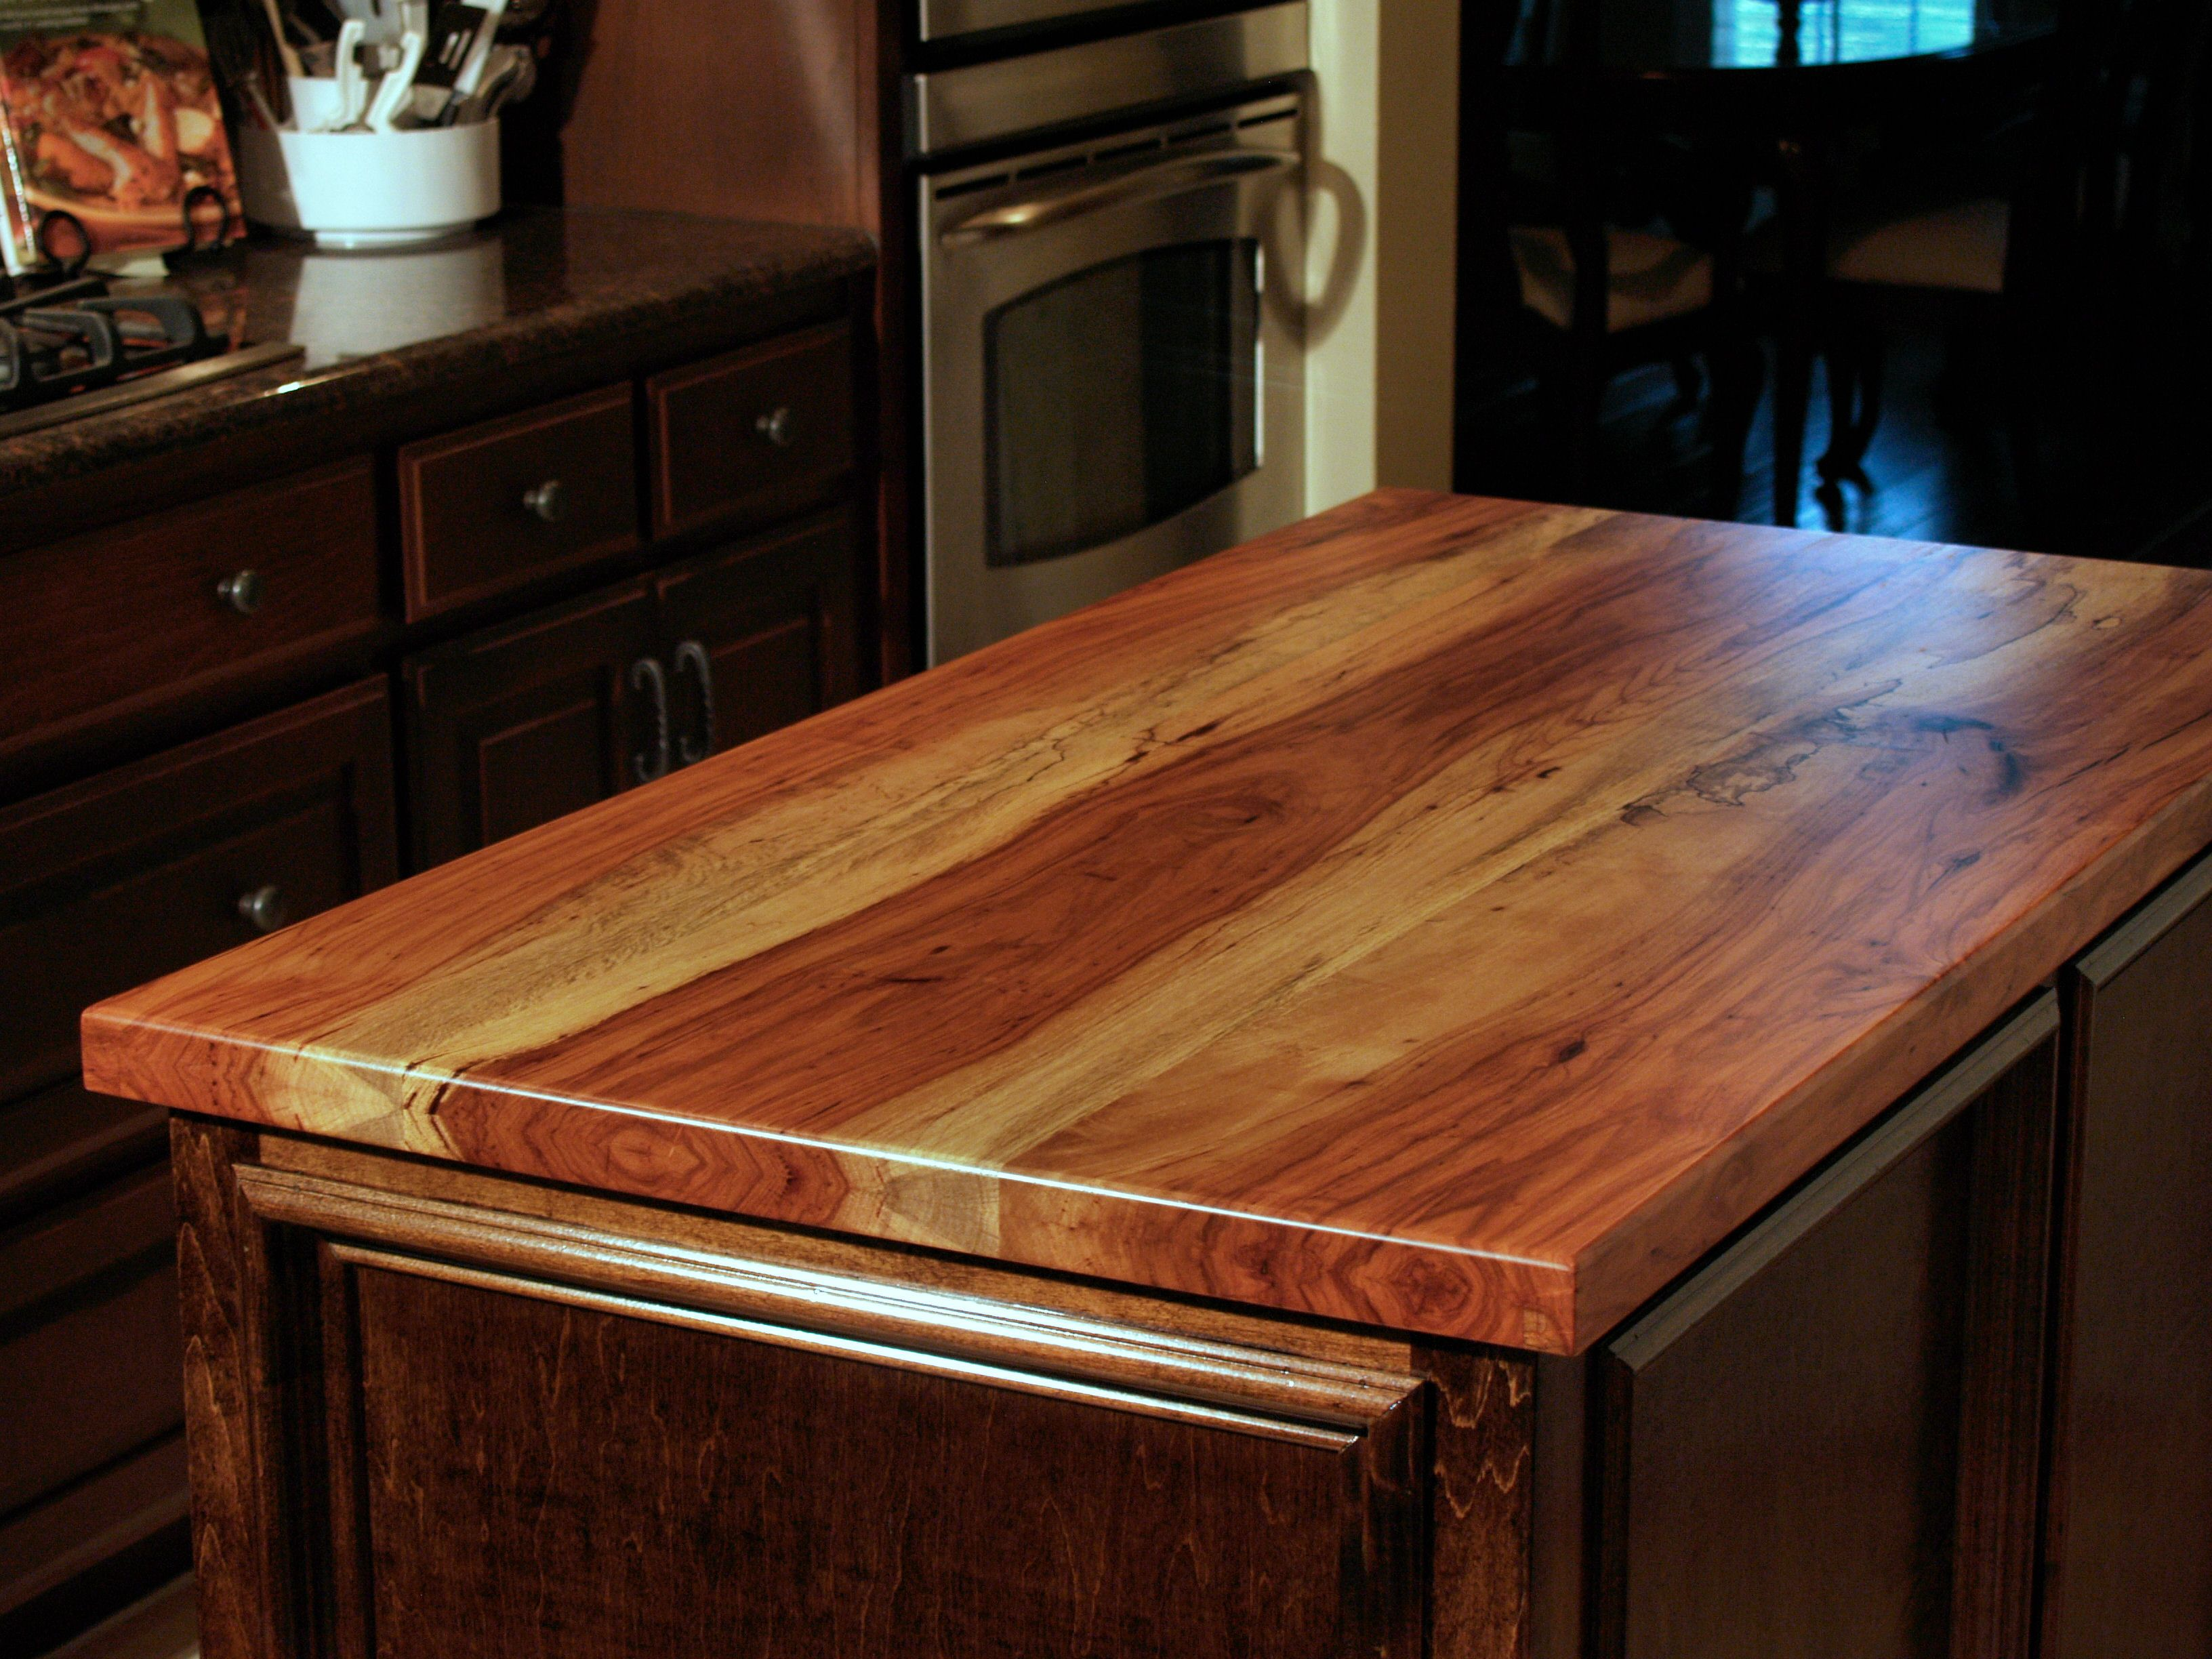 Tung Oil For Butcher Block Countertops Spalted Pecan Wood Countertop Photo Gallery By Devos